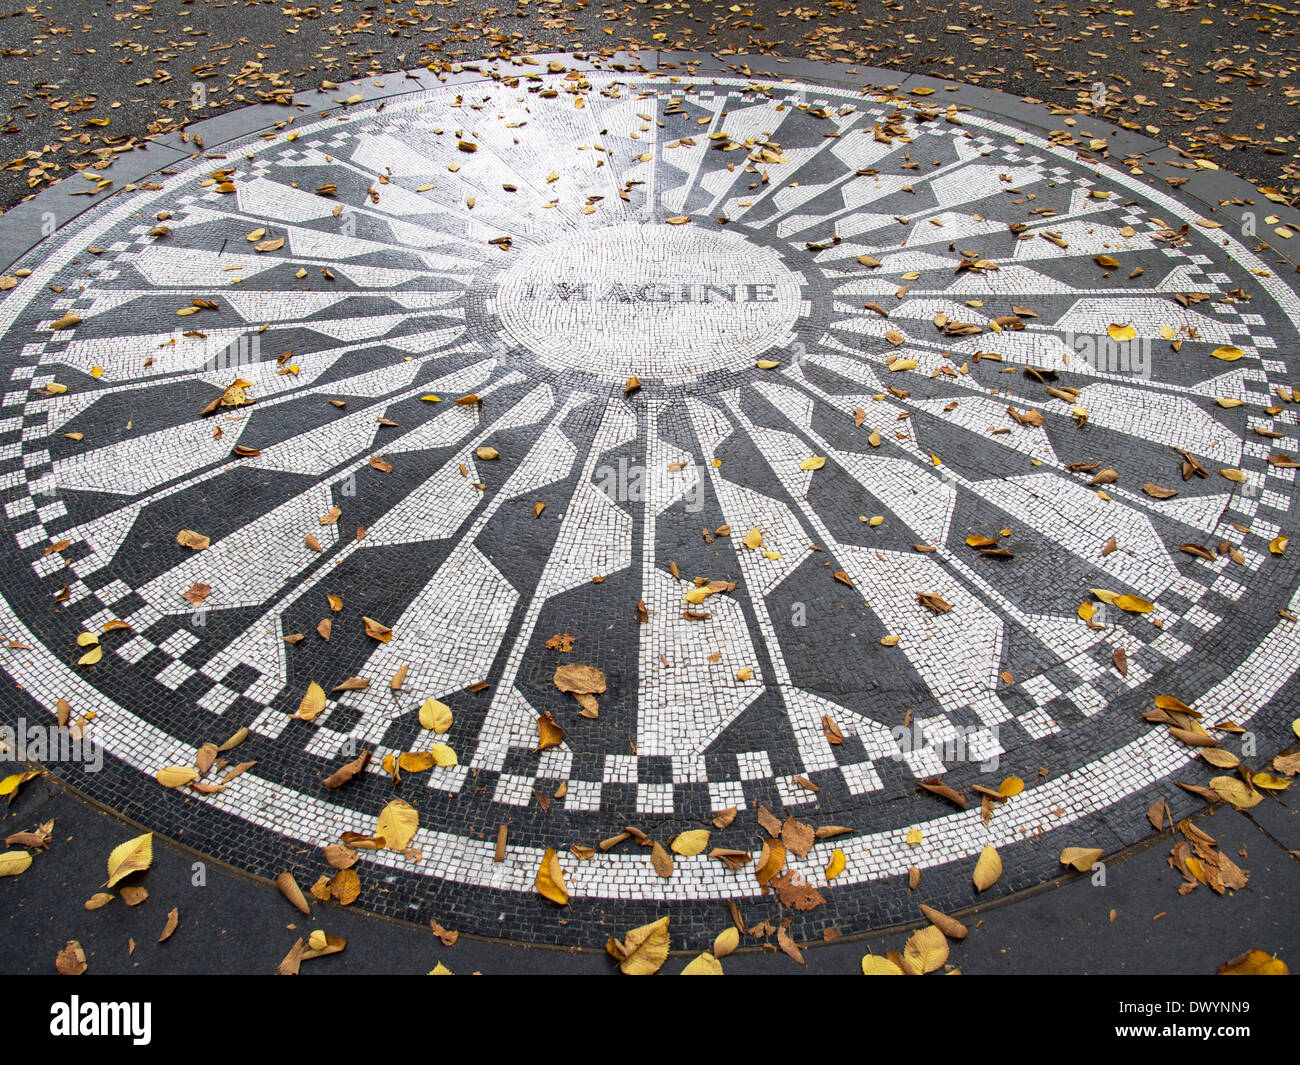 Memorial to John Lennon in Strawberry Fields in Fall, Central Park New York USA 2 - Stock Image